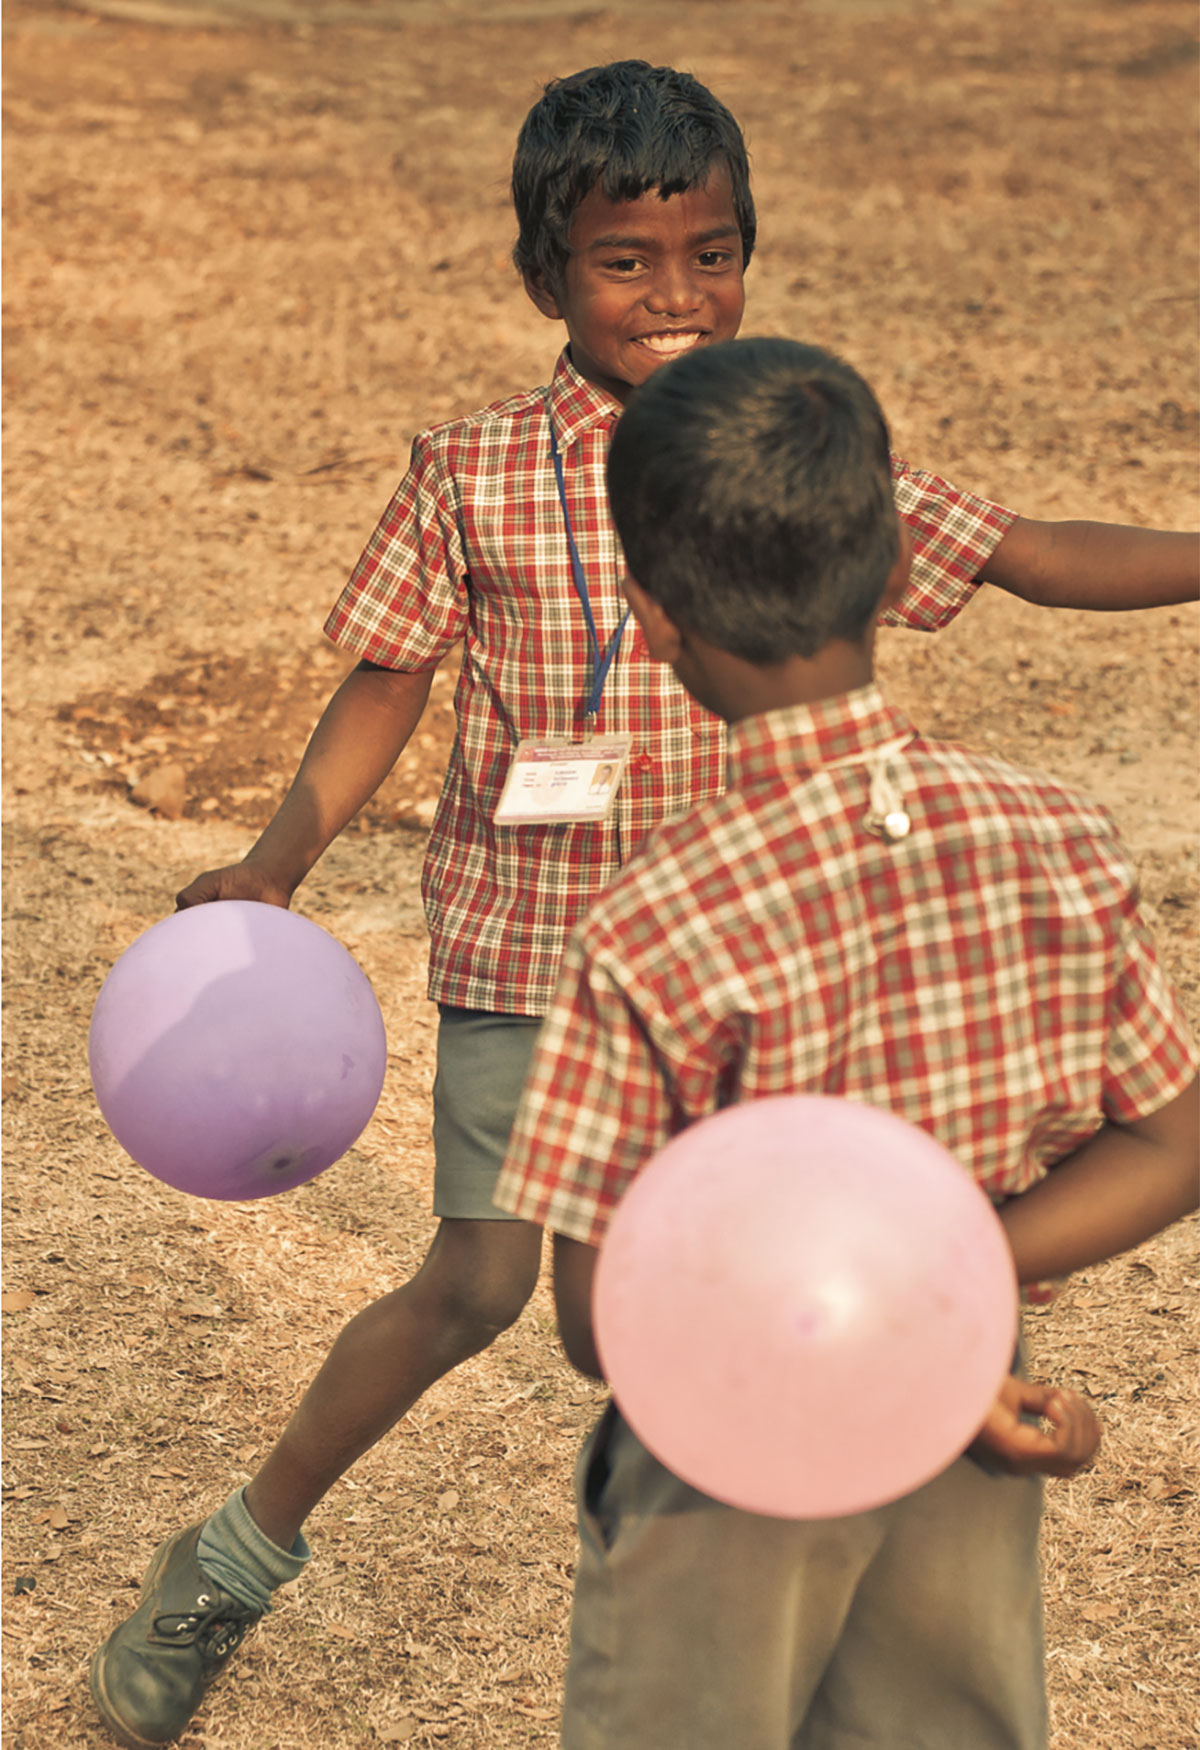 Indian children with balloons